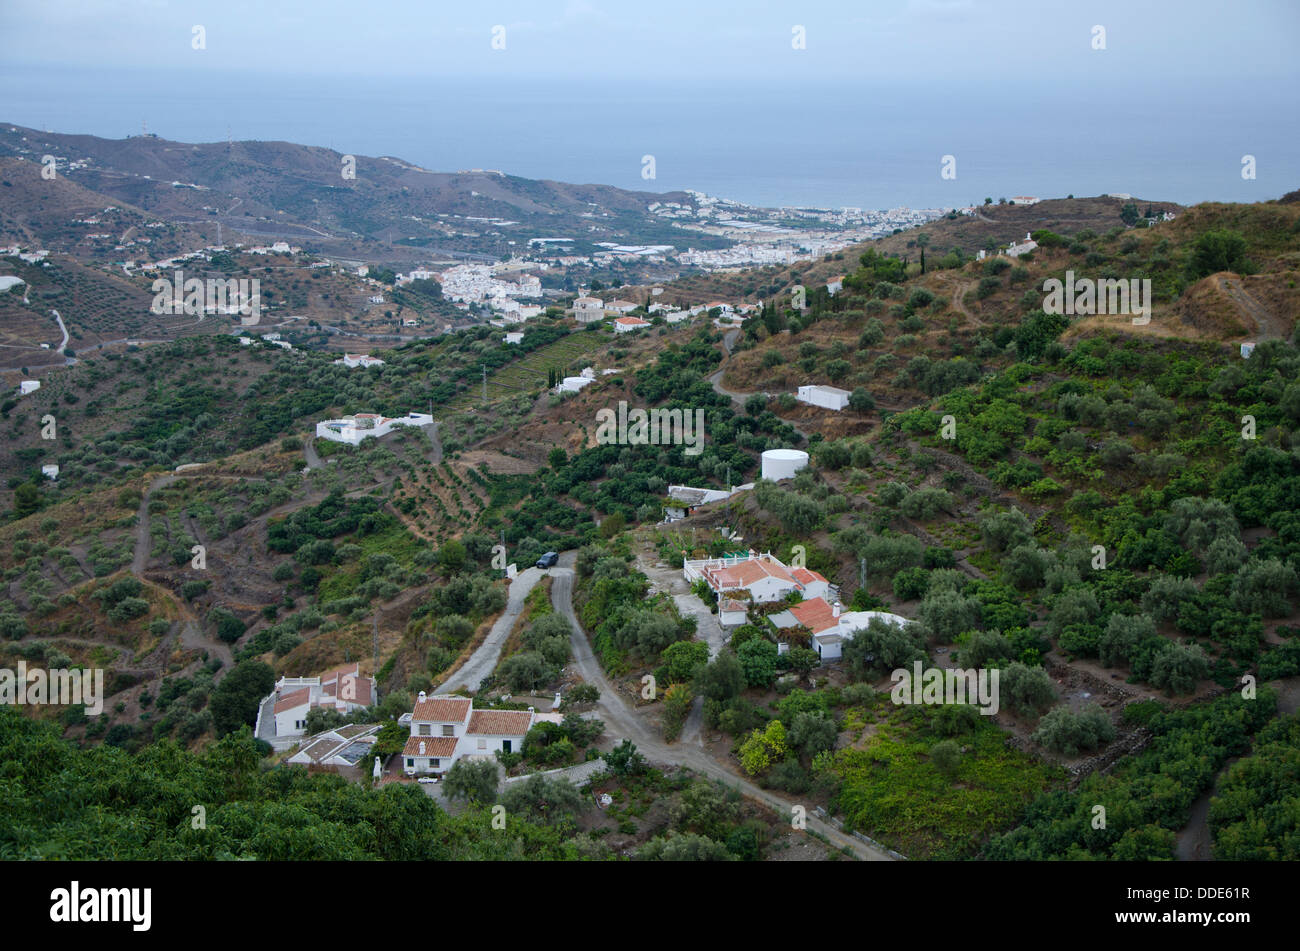 Spanish farmland in countryside with fruit trees inland from Torrox, andalusia, Spain. - Stock Image